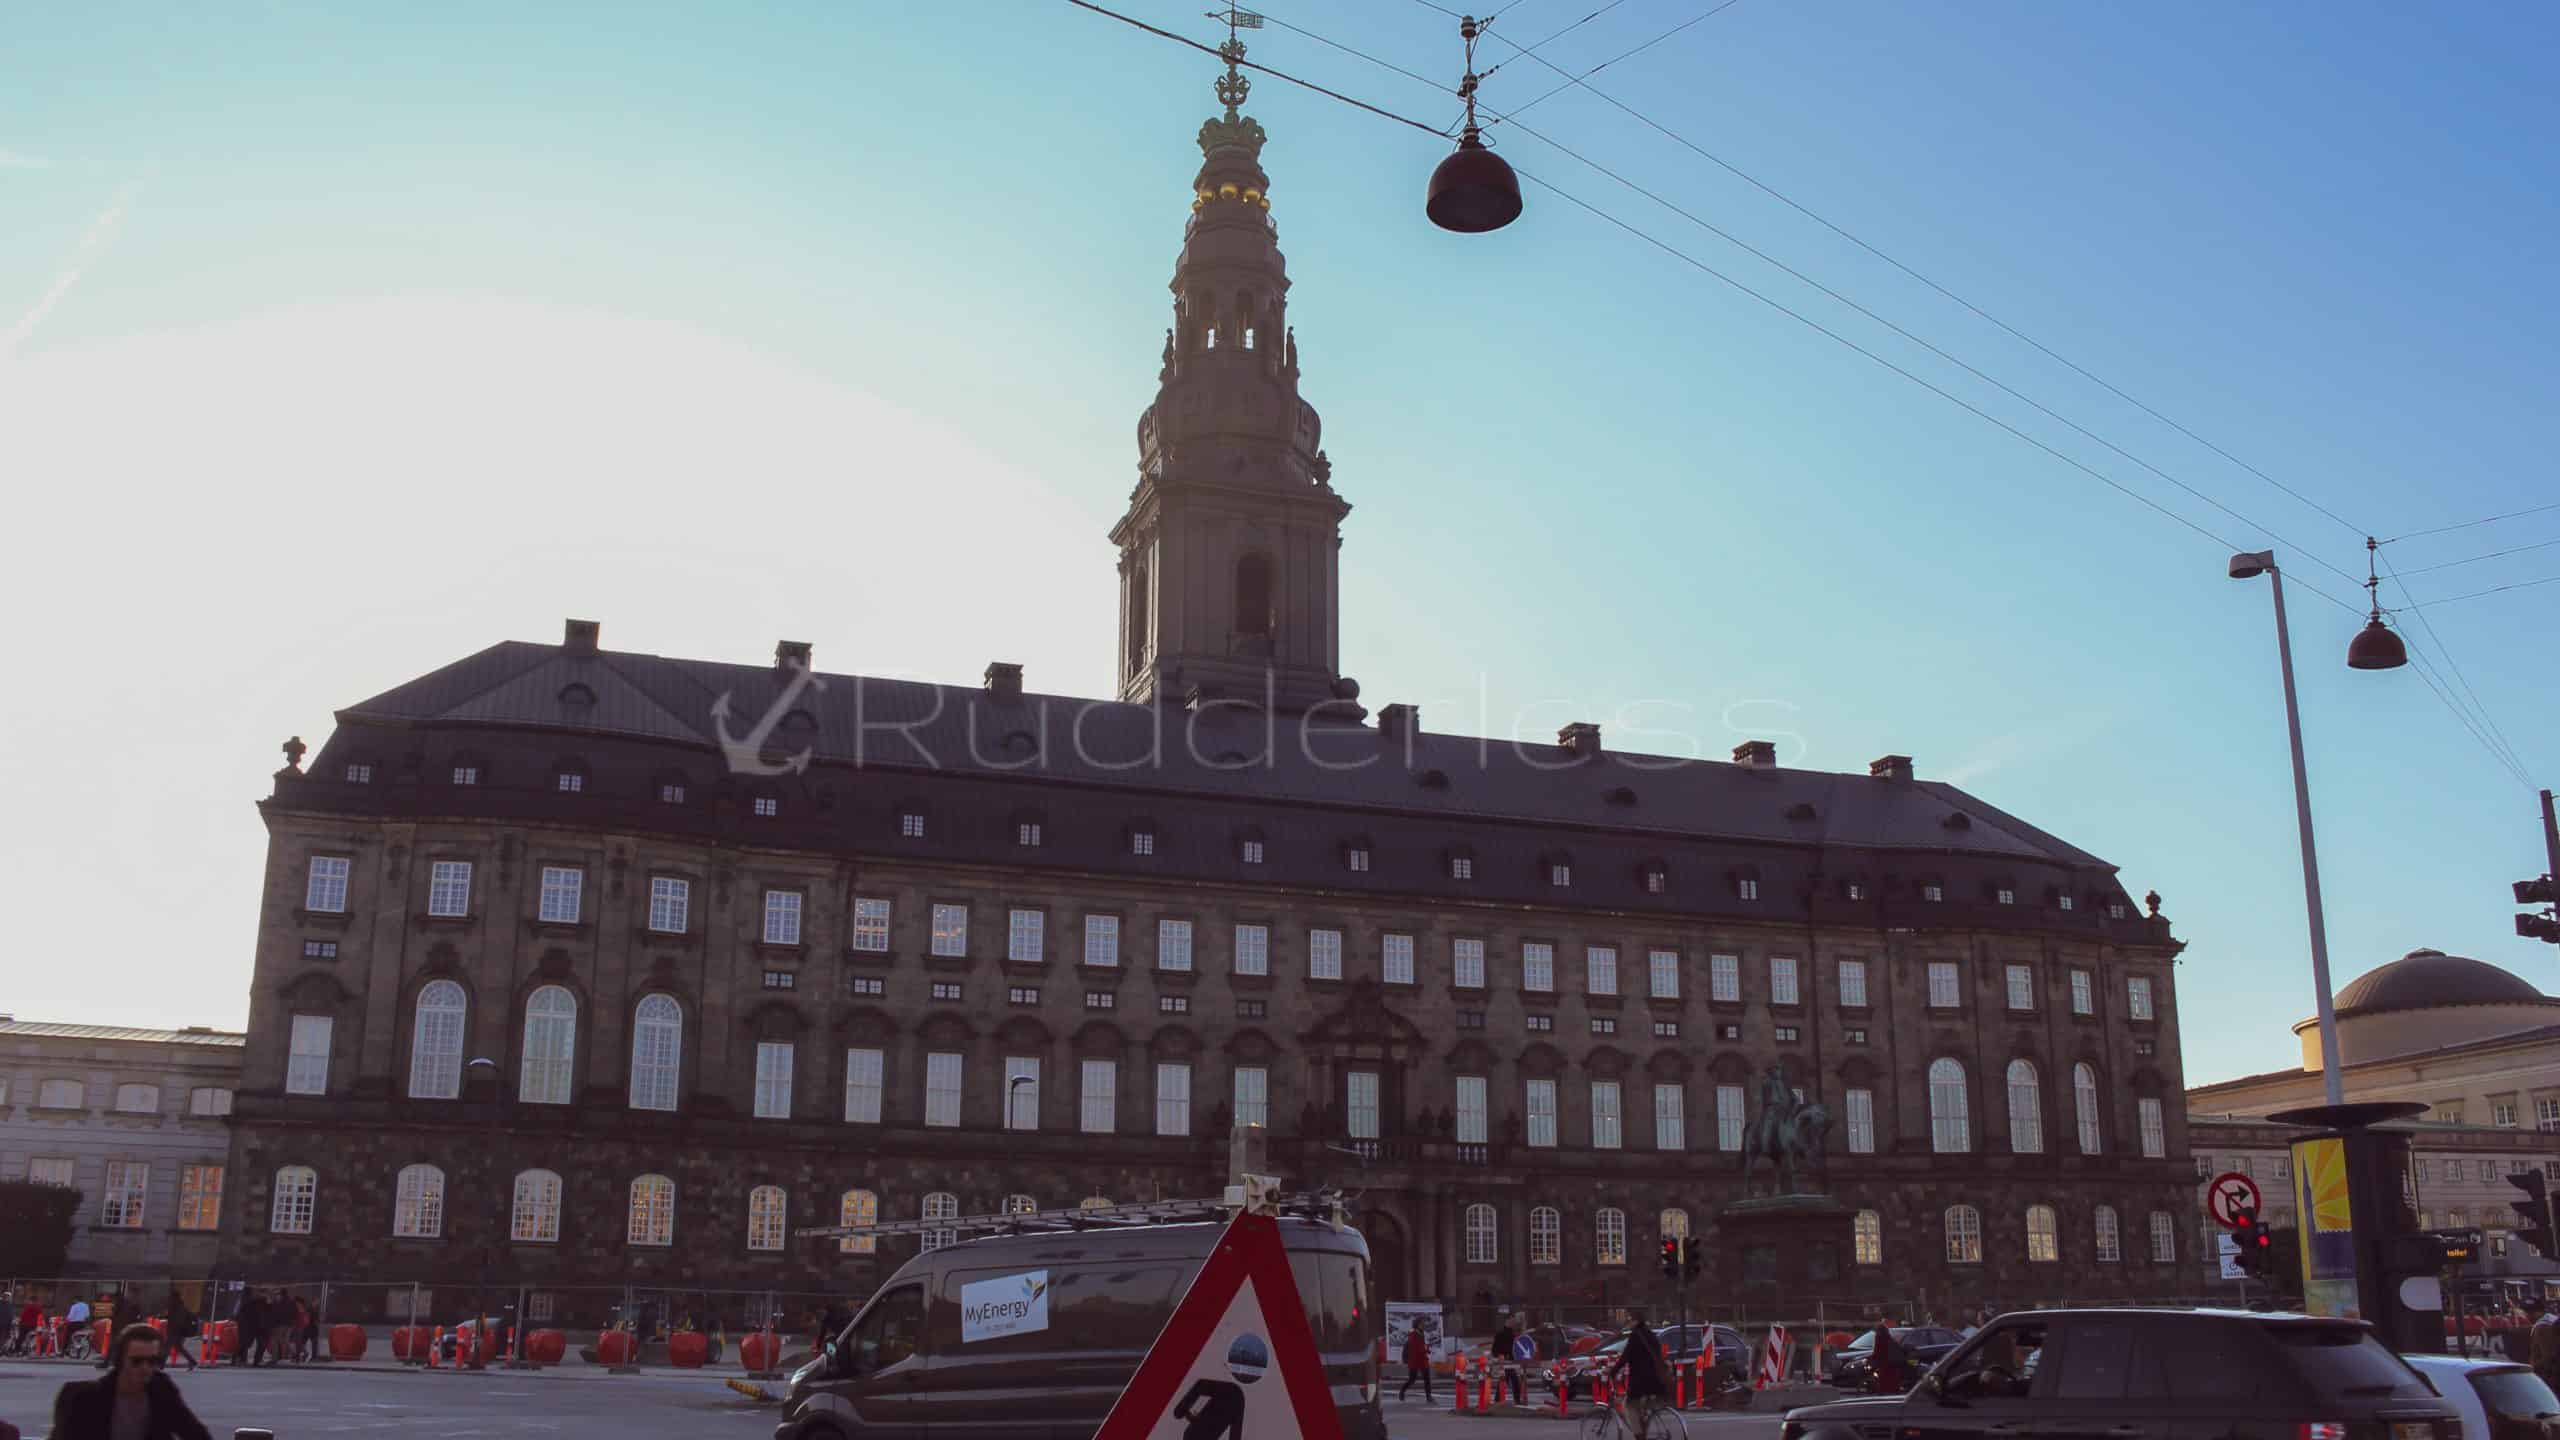 what to do in copenhagen - Christiansborg Castle